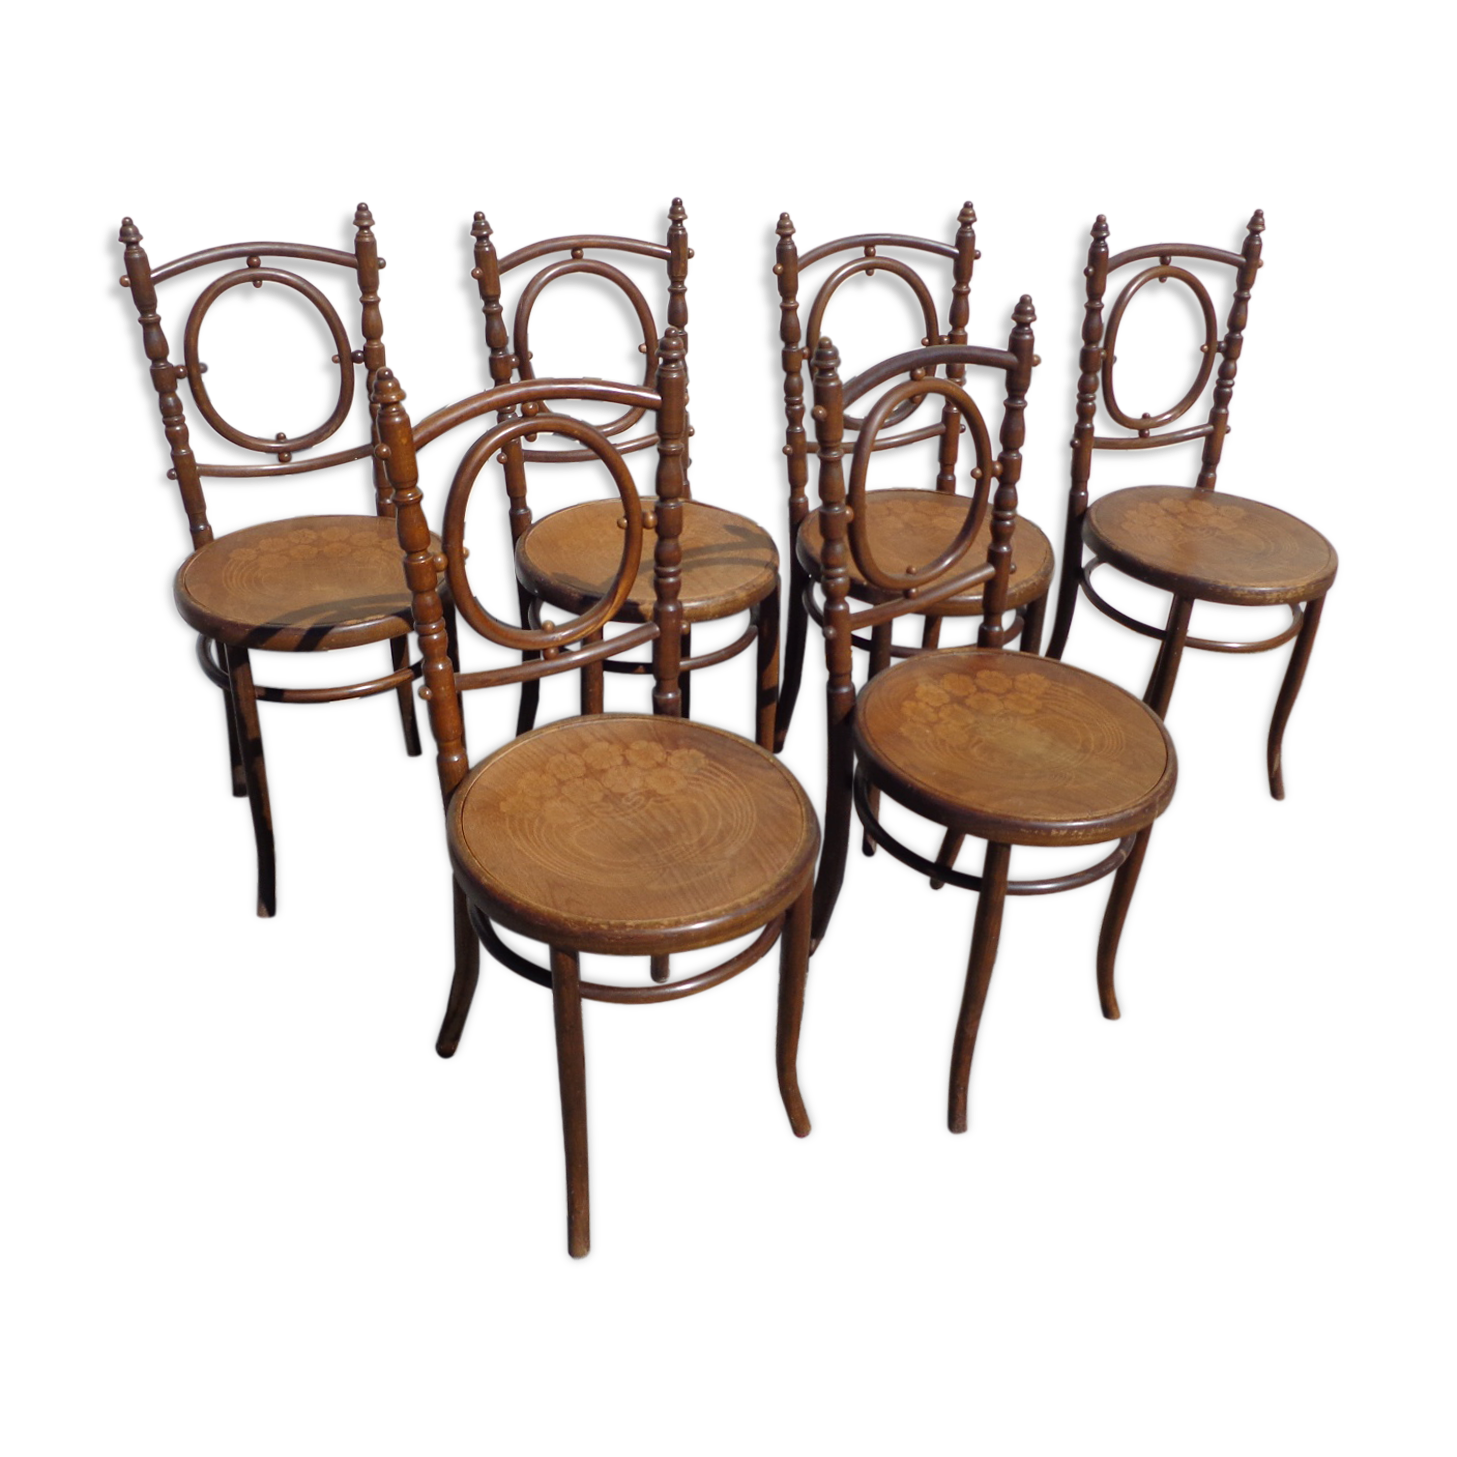 Gallery of ensemble de chaises bistrot fischel mdaillon for Chaise bistrot baumann prix